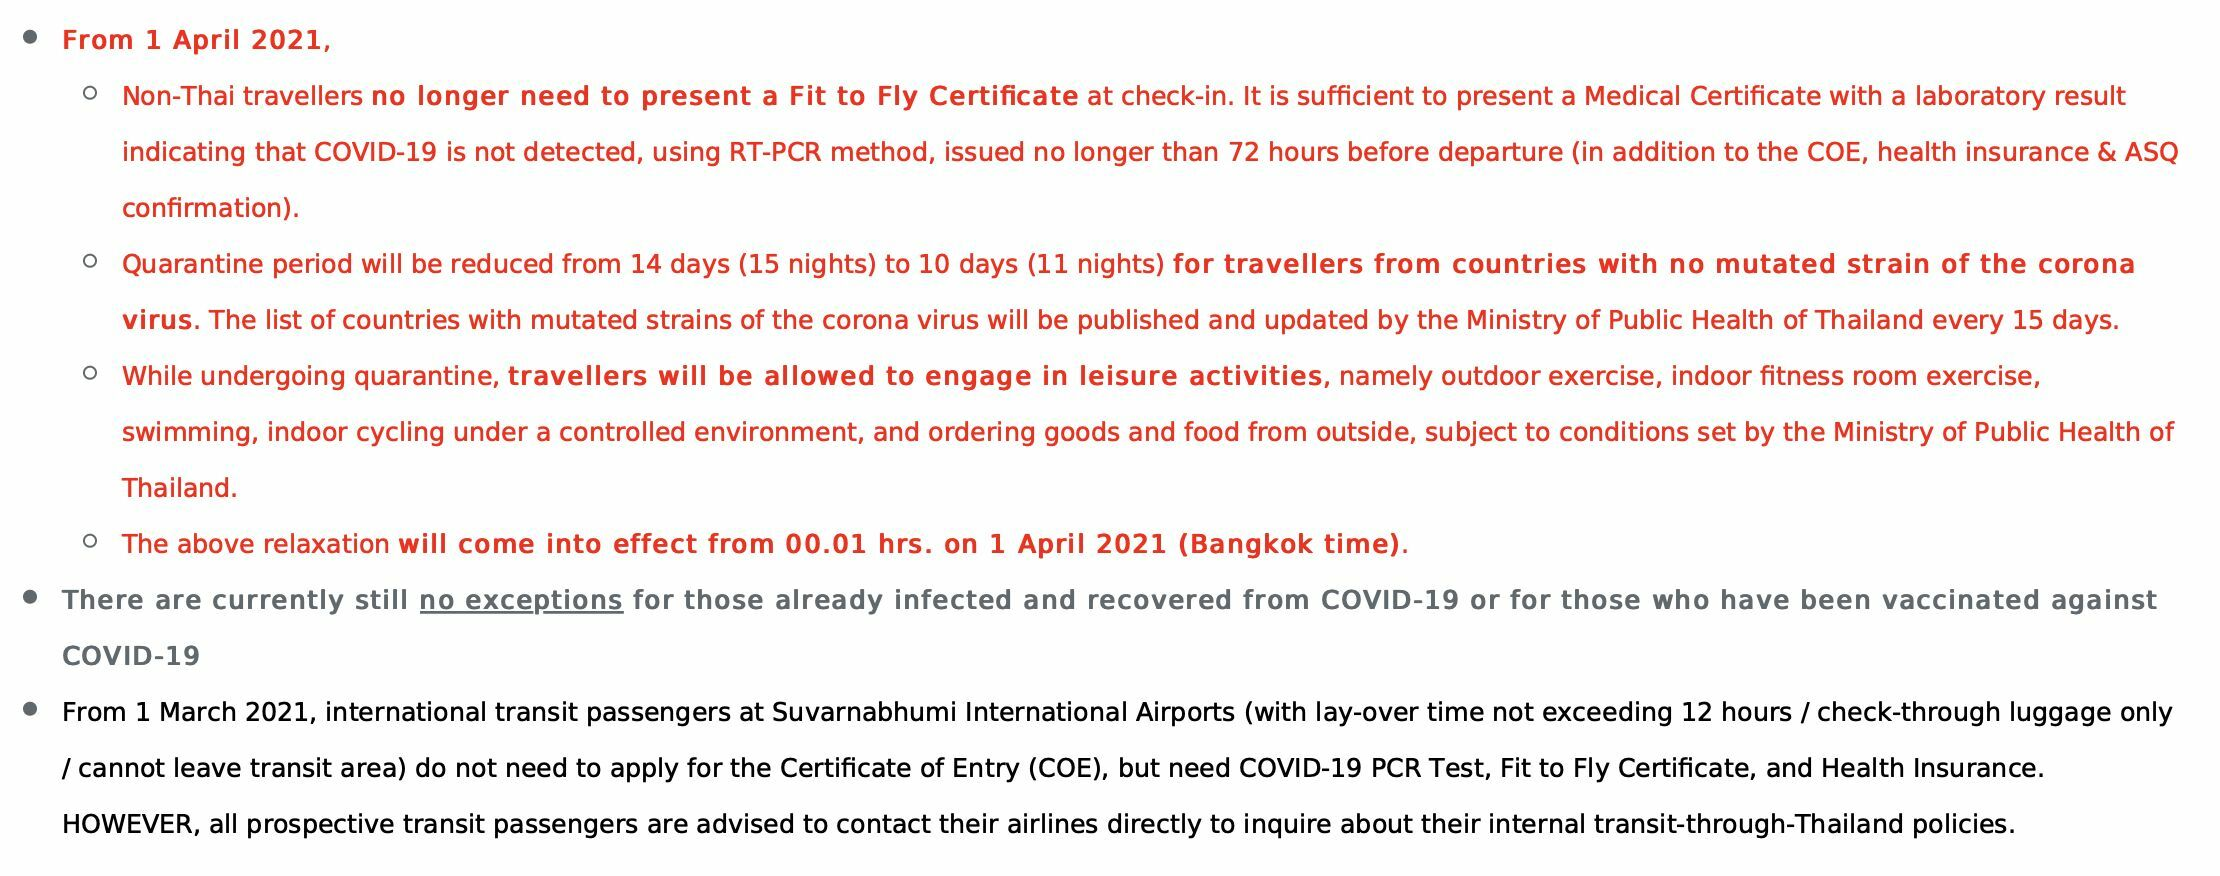 Thai quarantine confusion - do ASQ hotels know about April 1 changes? | News by Thaiger